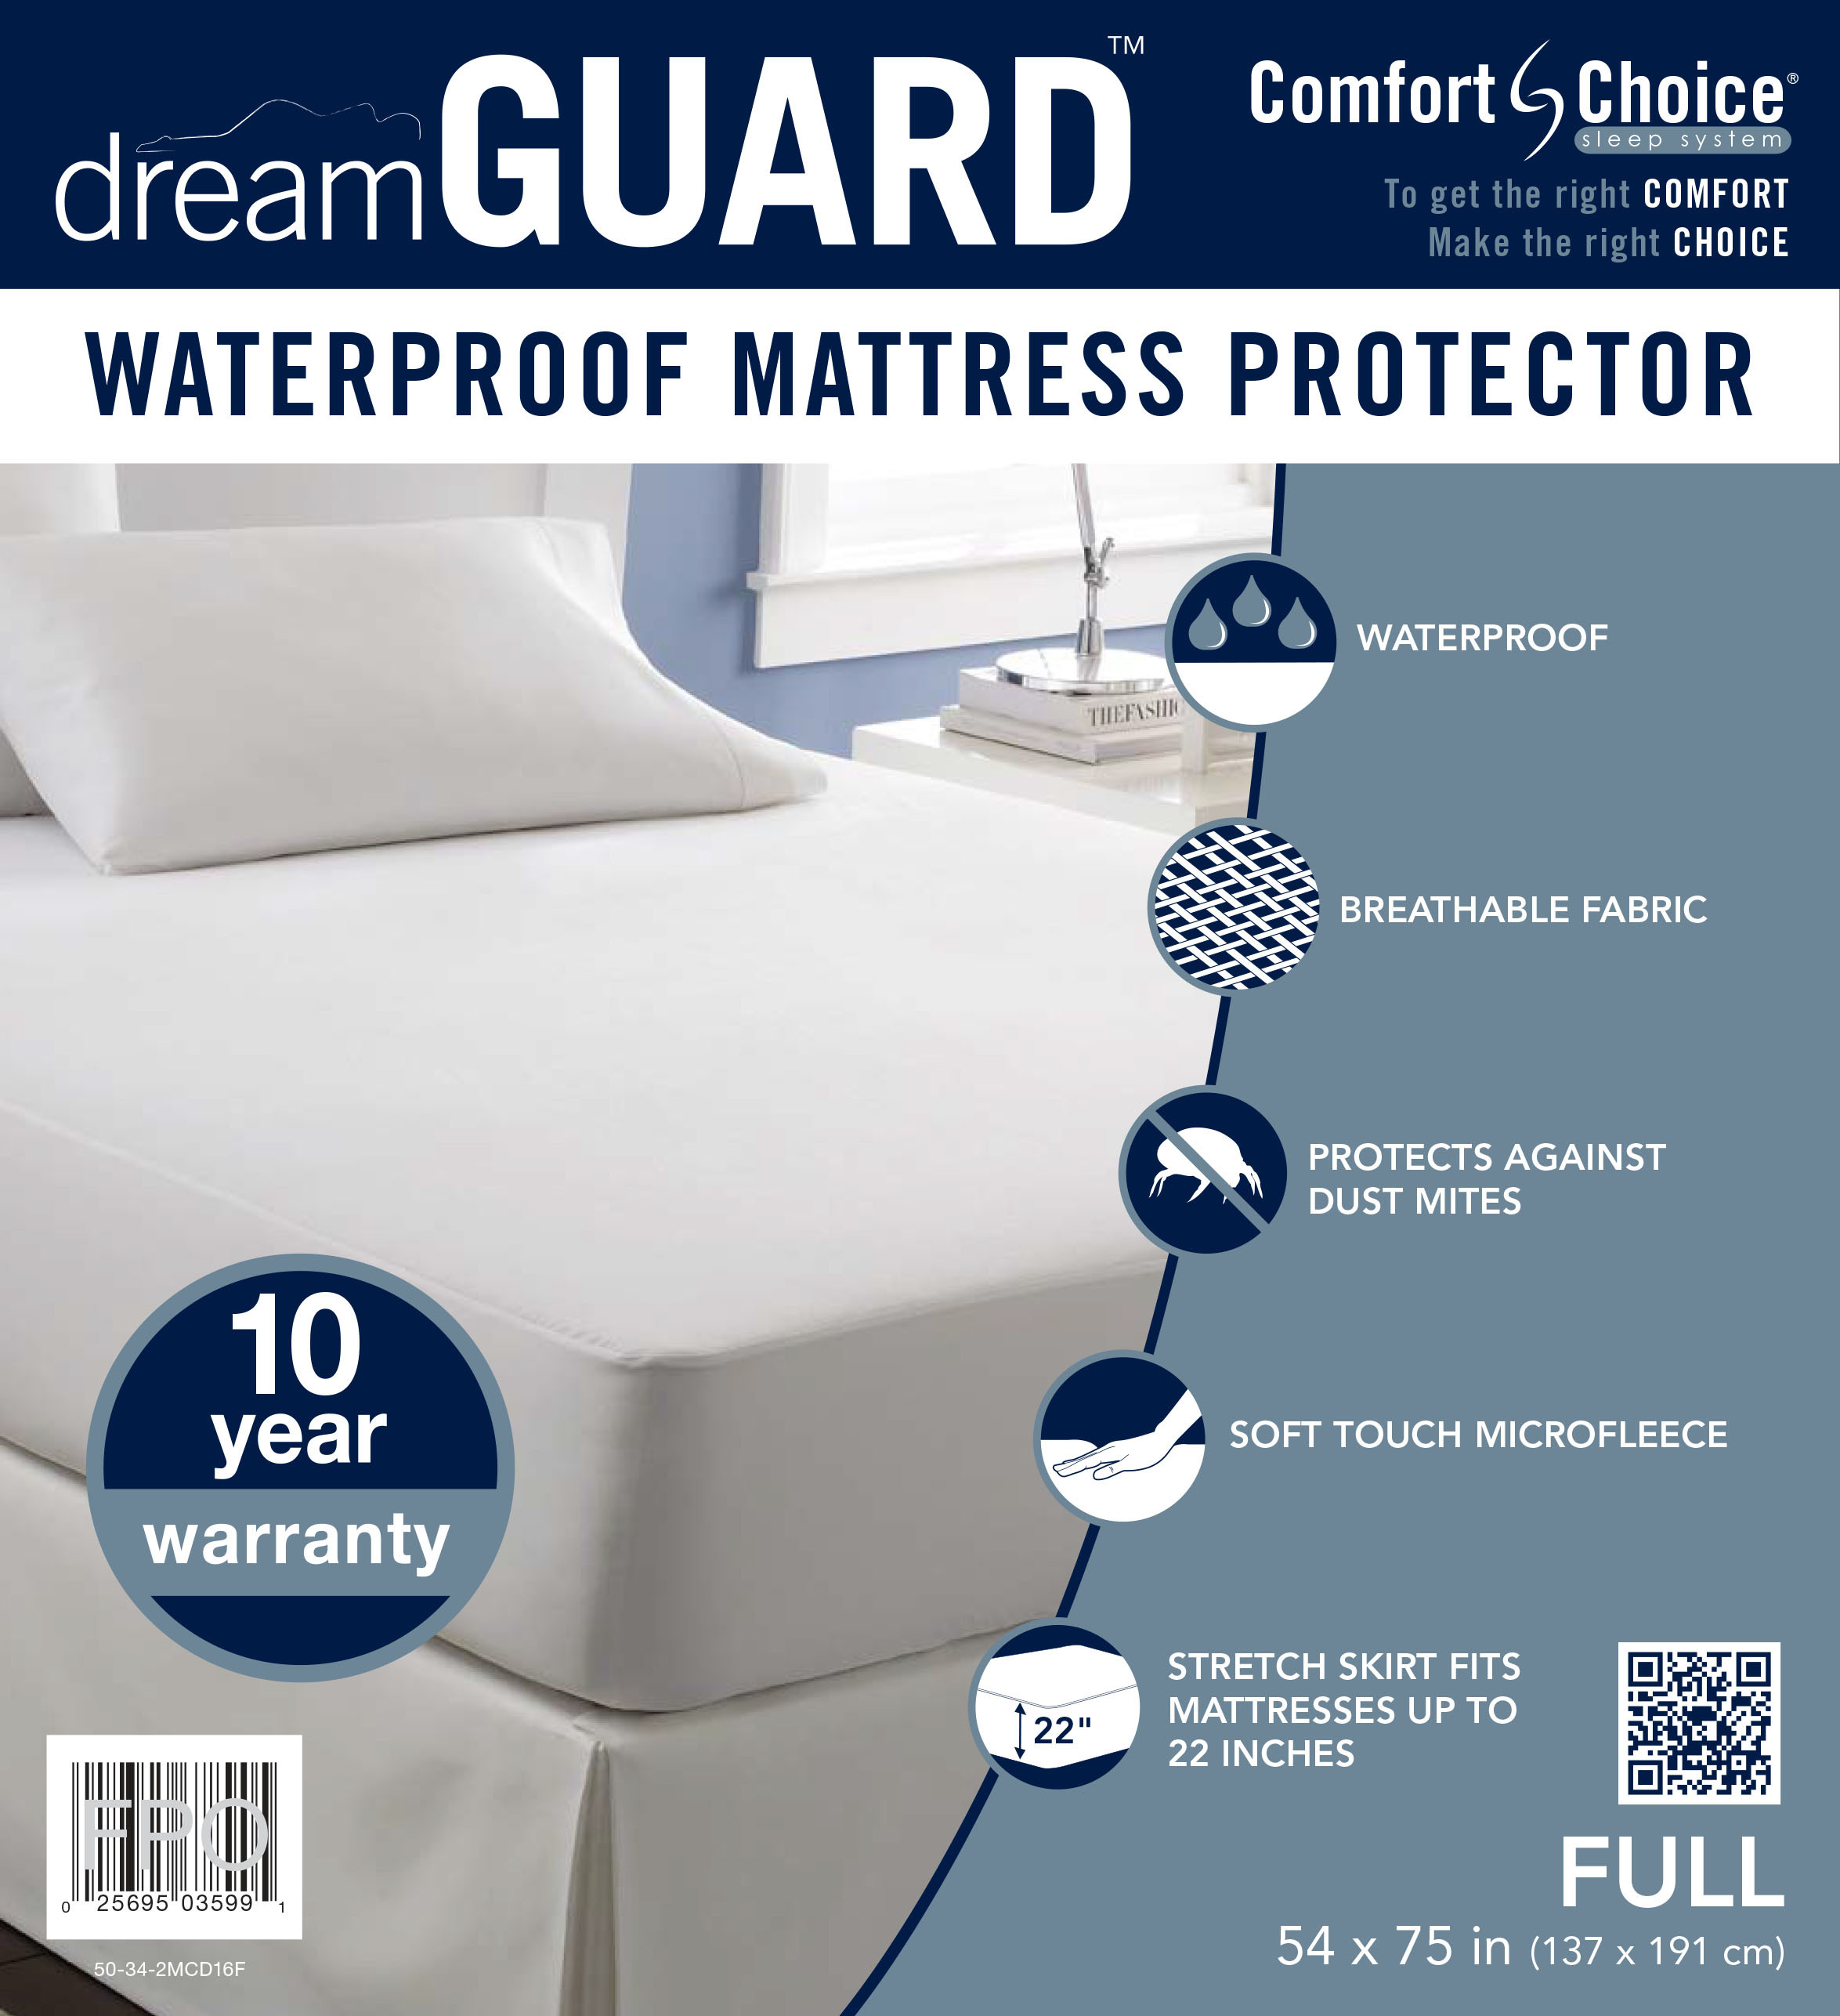 dreamGUARD Full Size Mattress Protector